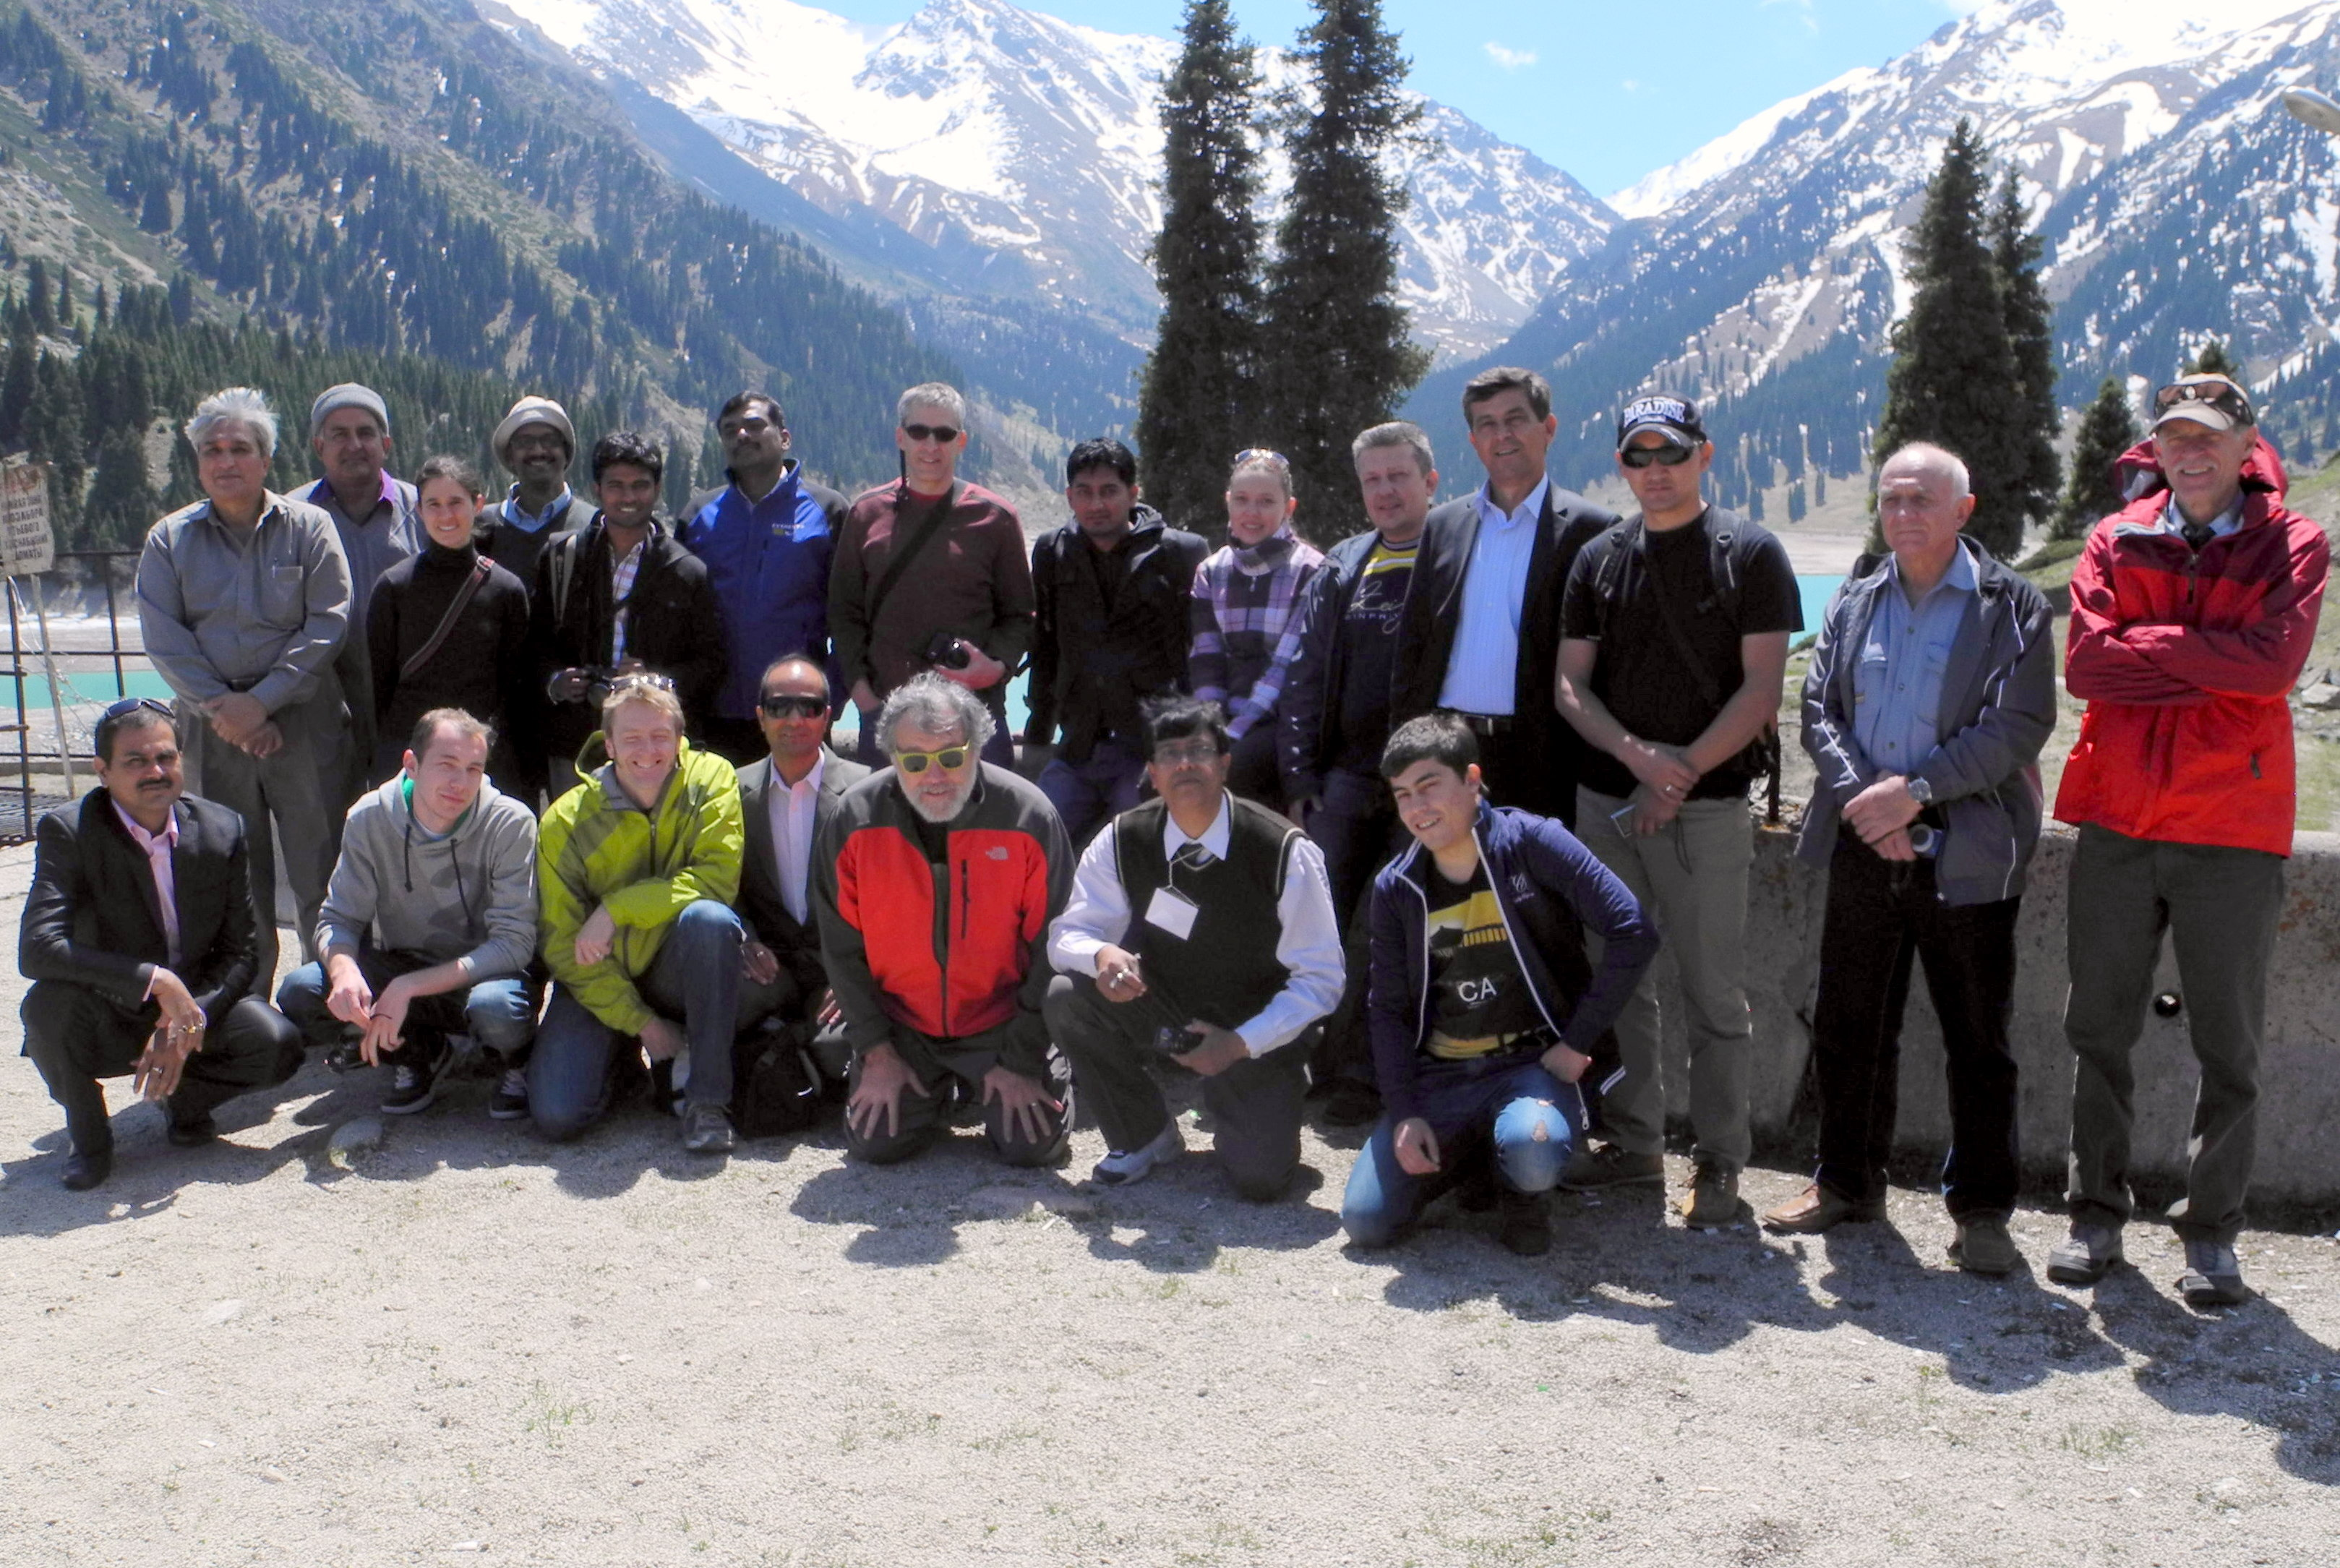 The CHARIS group near the Big Almaty Lake field station. Back row, standing, from left to right are Danial Hashmi, Rafaqat Ali Malik, Alana Wilson, George Jose Pottakkal , Shaktiman Singh, A.L. Ramanathan, Bruce Raup, Bikas Chandra Bhattarai, Larissa Kogutenko, Alexandr Yegorov, Inom Sherovich Normatov, Bakyt Ermenbaev, Vladimir Shatravin, and Richard Armstrong. Front row, kneeling, from left to right are Rajesh Kumar, Danila Uvarov, Andy Barrett, Rijan Bhakta Kayastha, Mark Williams, Chandranath Chatterjee, and Parviz Normatov.